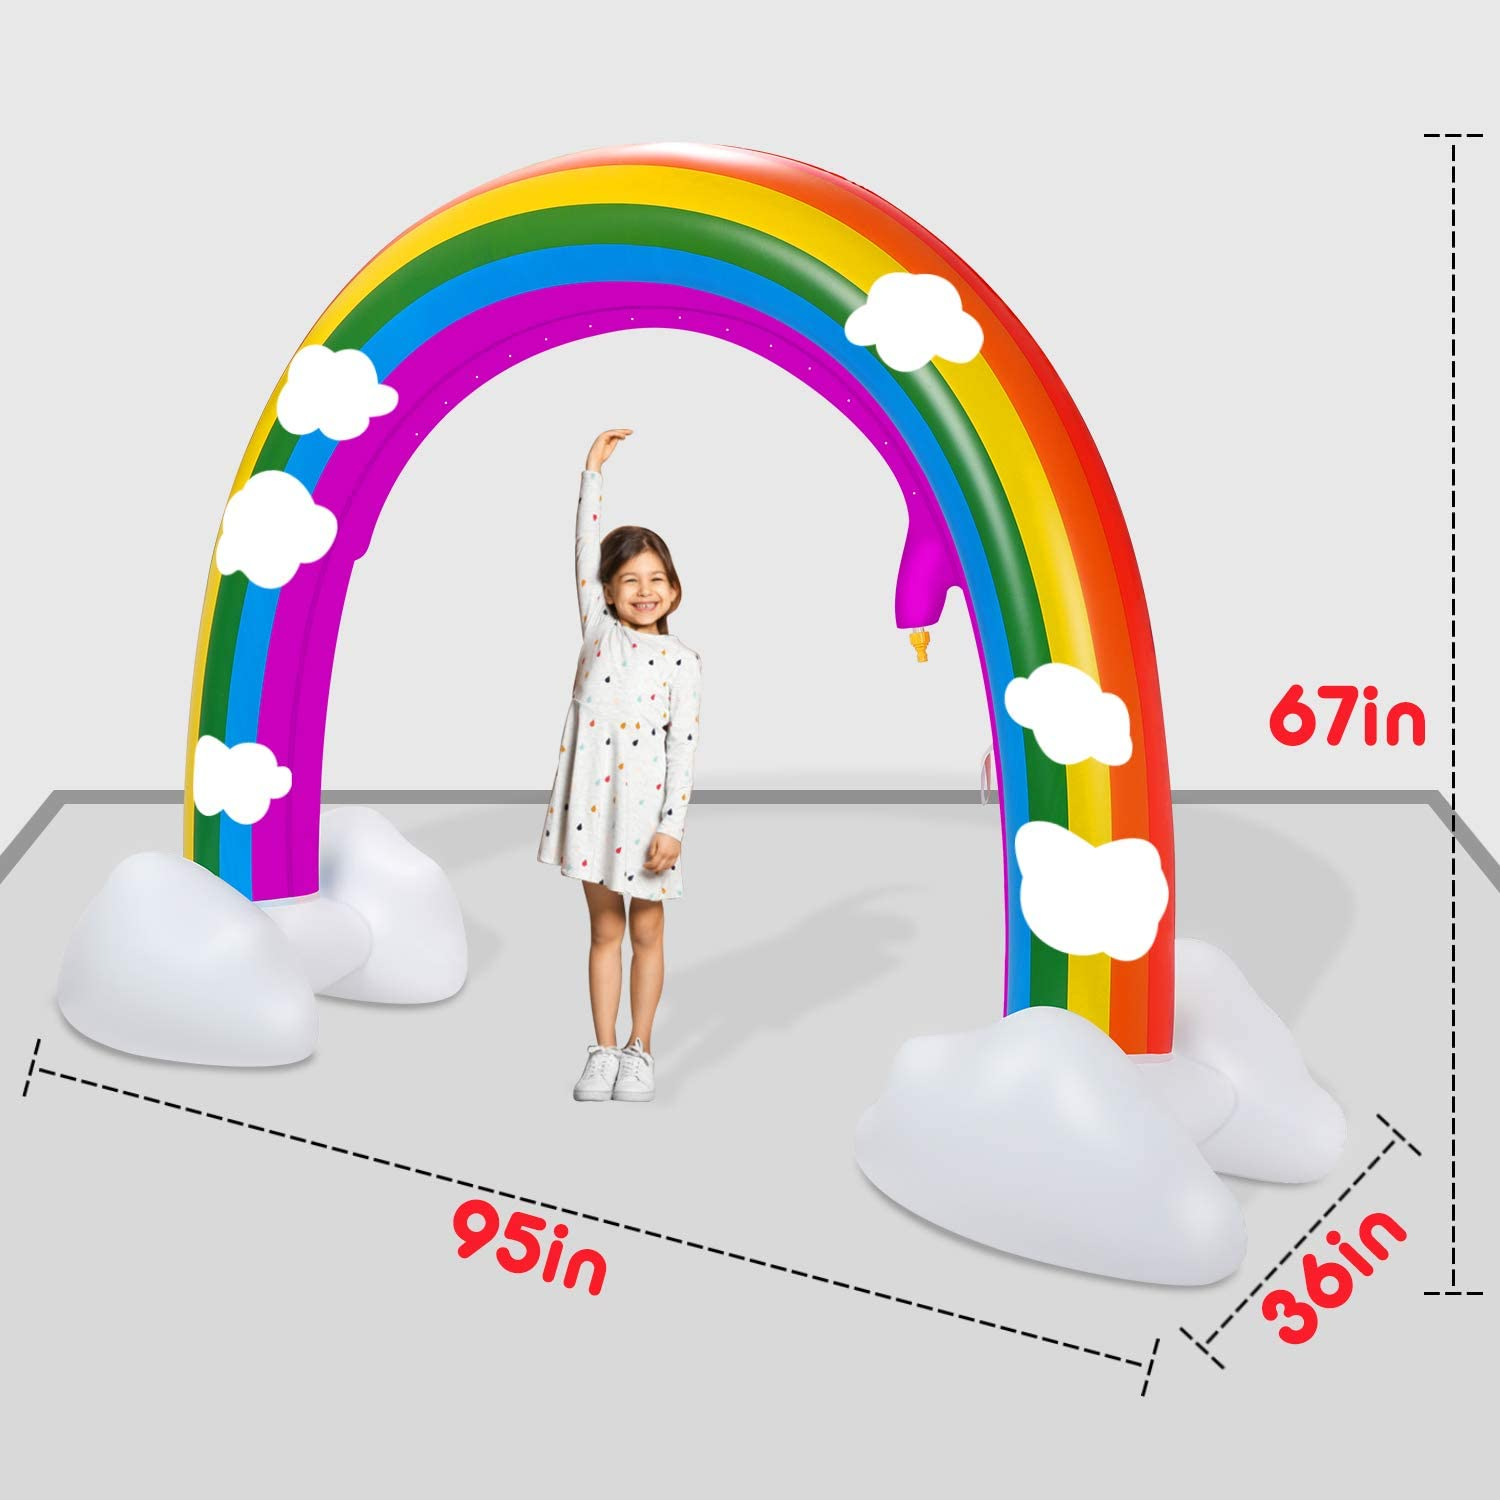 95 Wider Summer Inflatable Water Toys Outdoor Backyard Party Pool Summer Sprinkler Toy for Children Infants Boys Girls and Kids Summer Spray Water Toy lenbest Rainbow Sprinkler Toys